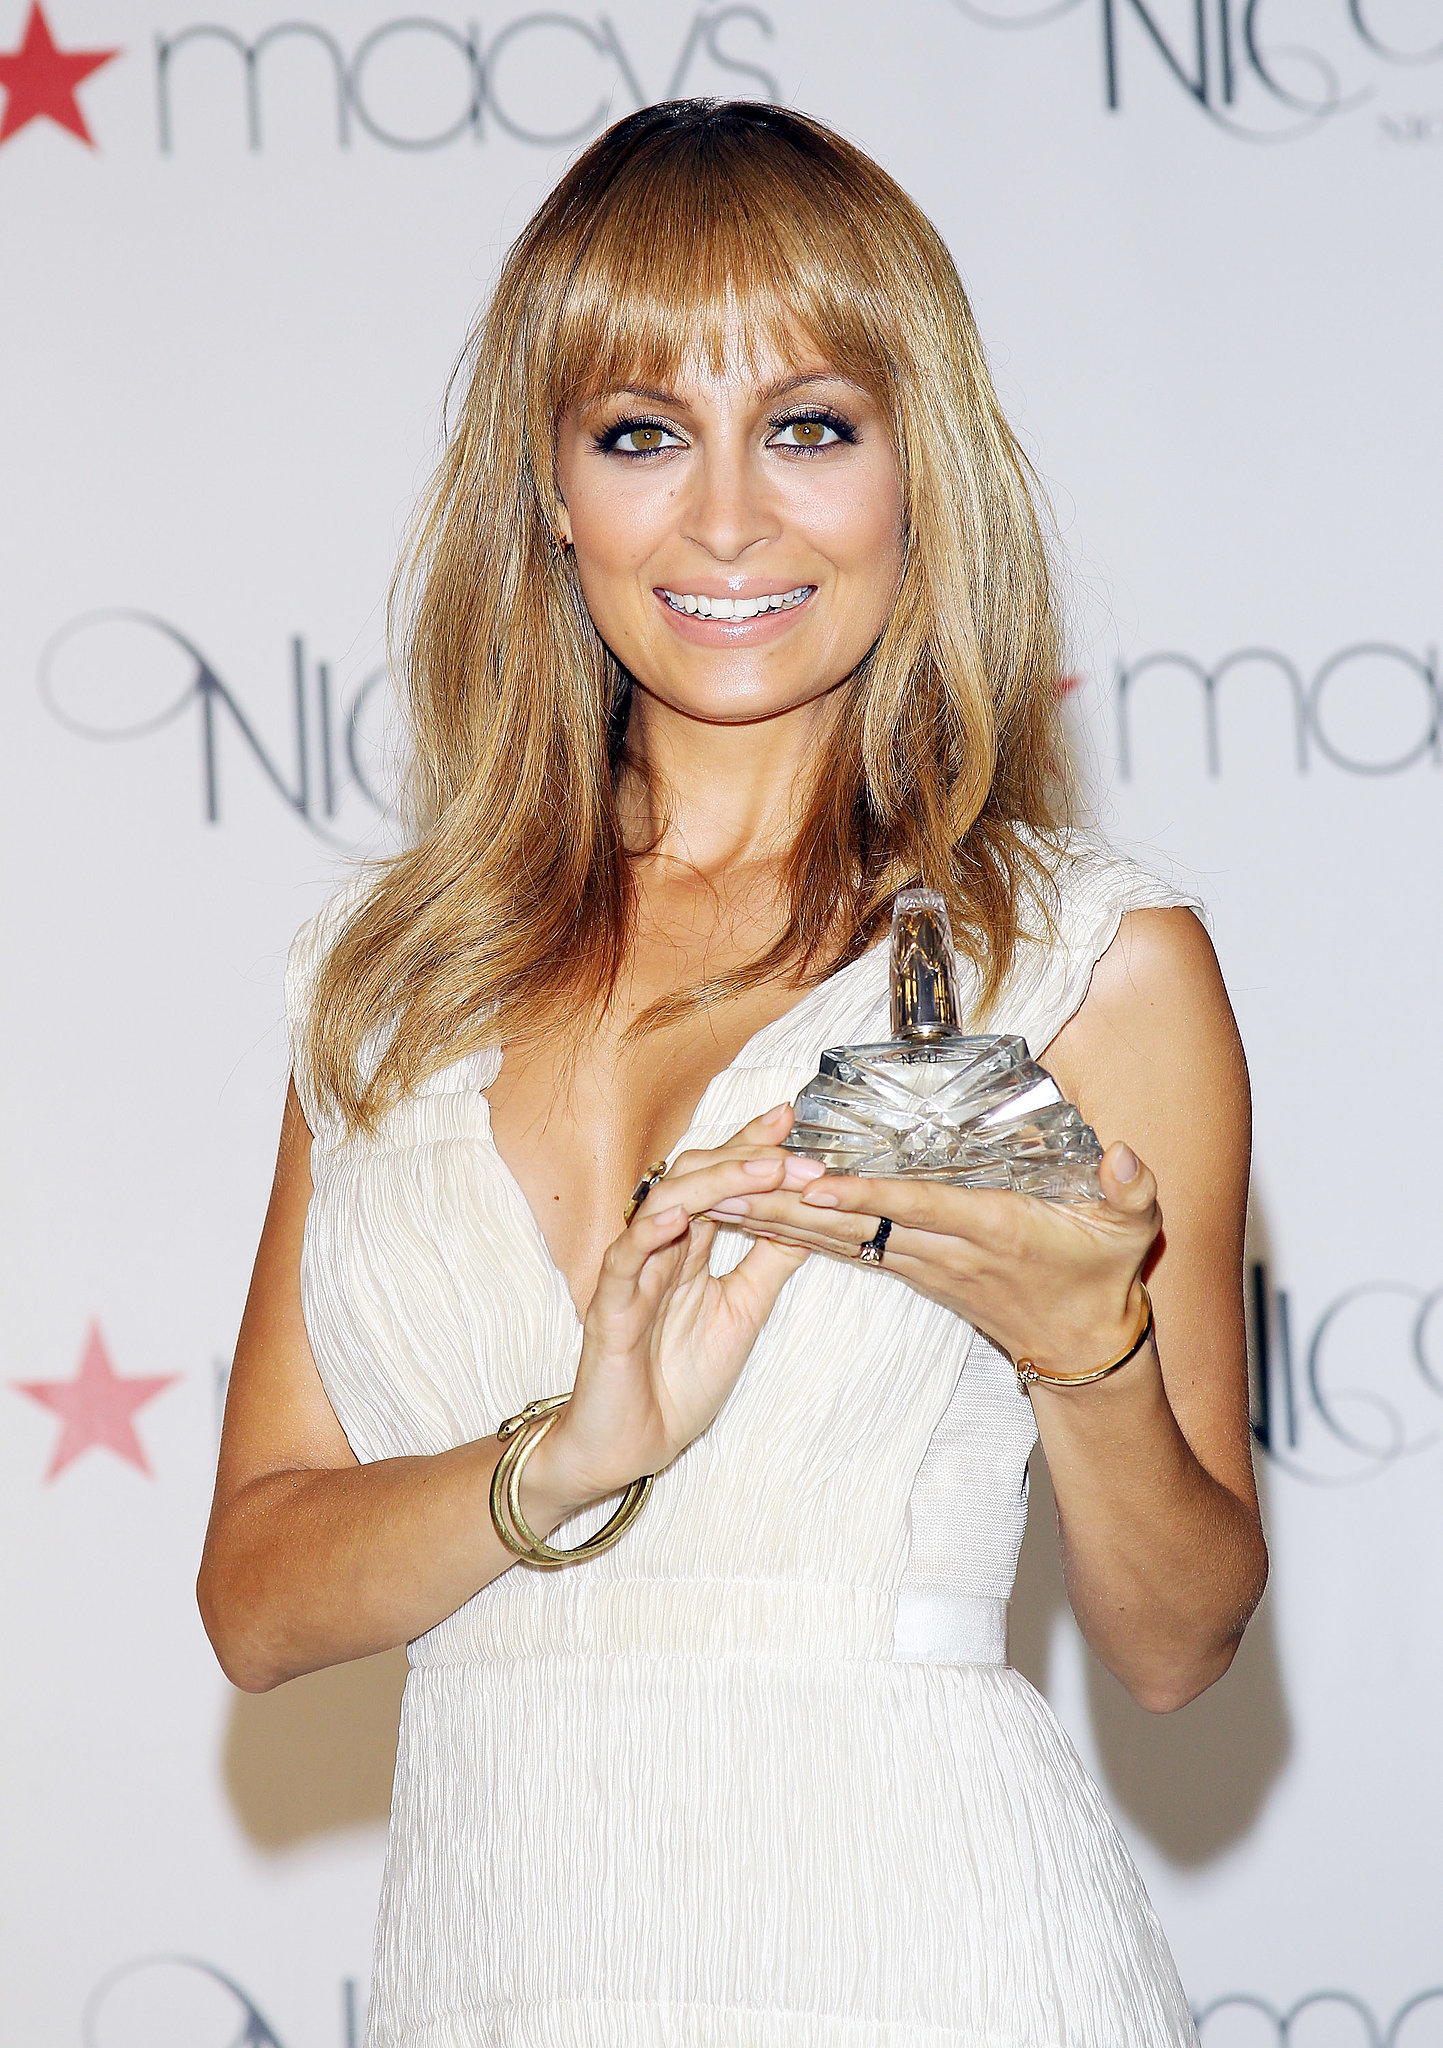 Nicole attended a launch event for her fragrance, Nicole, at